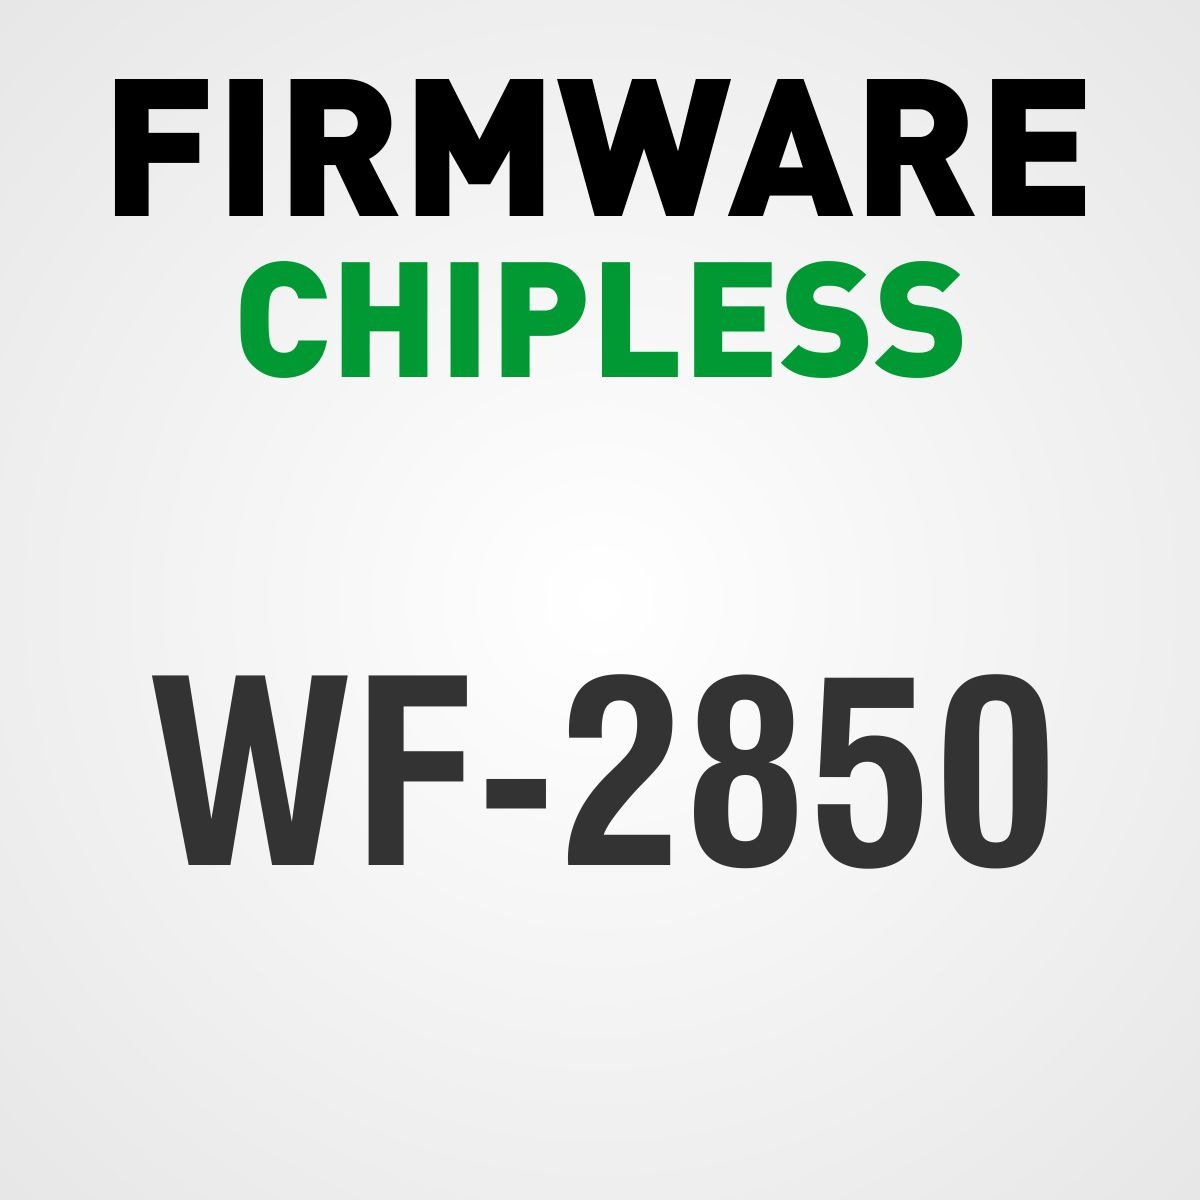 EPSON WF-2850 | Arquivo Firmware ChipLess